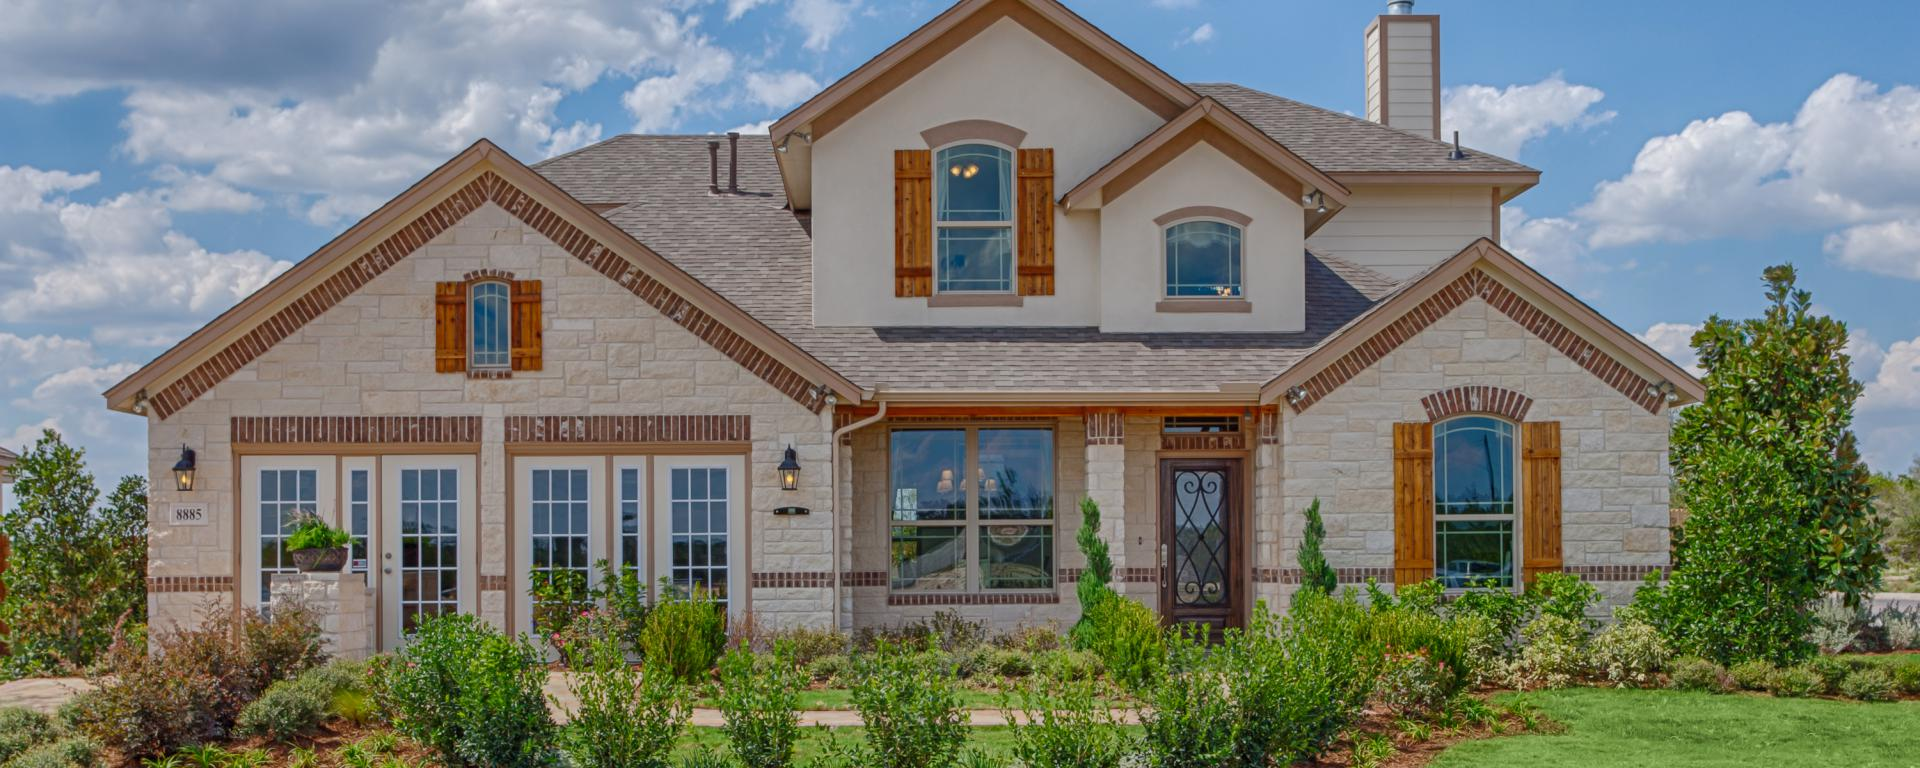 Nueces New Home Plan For The Estates At Mesa Oaks In